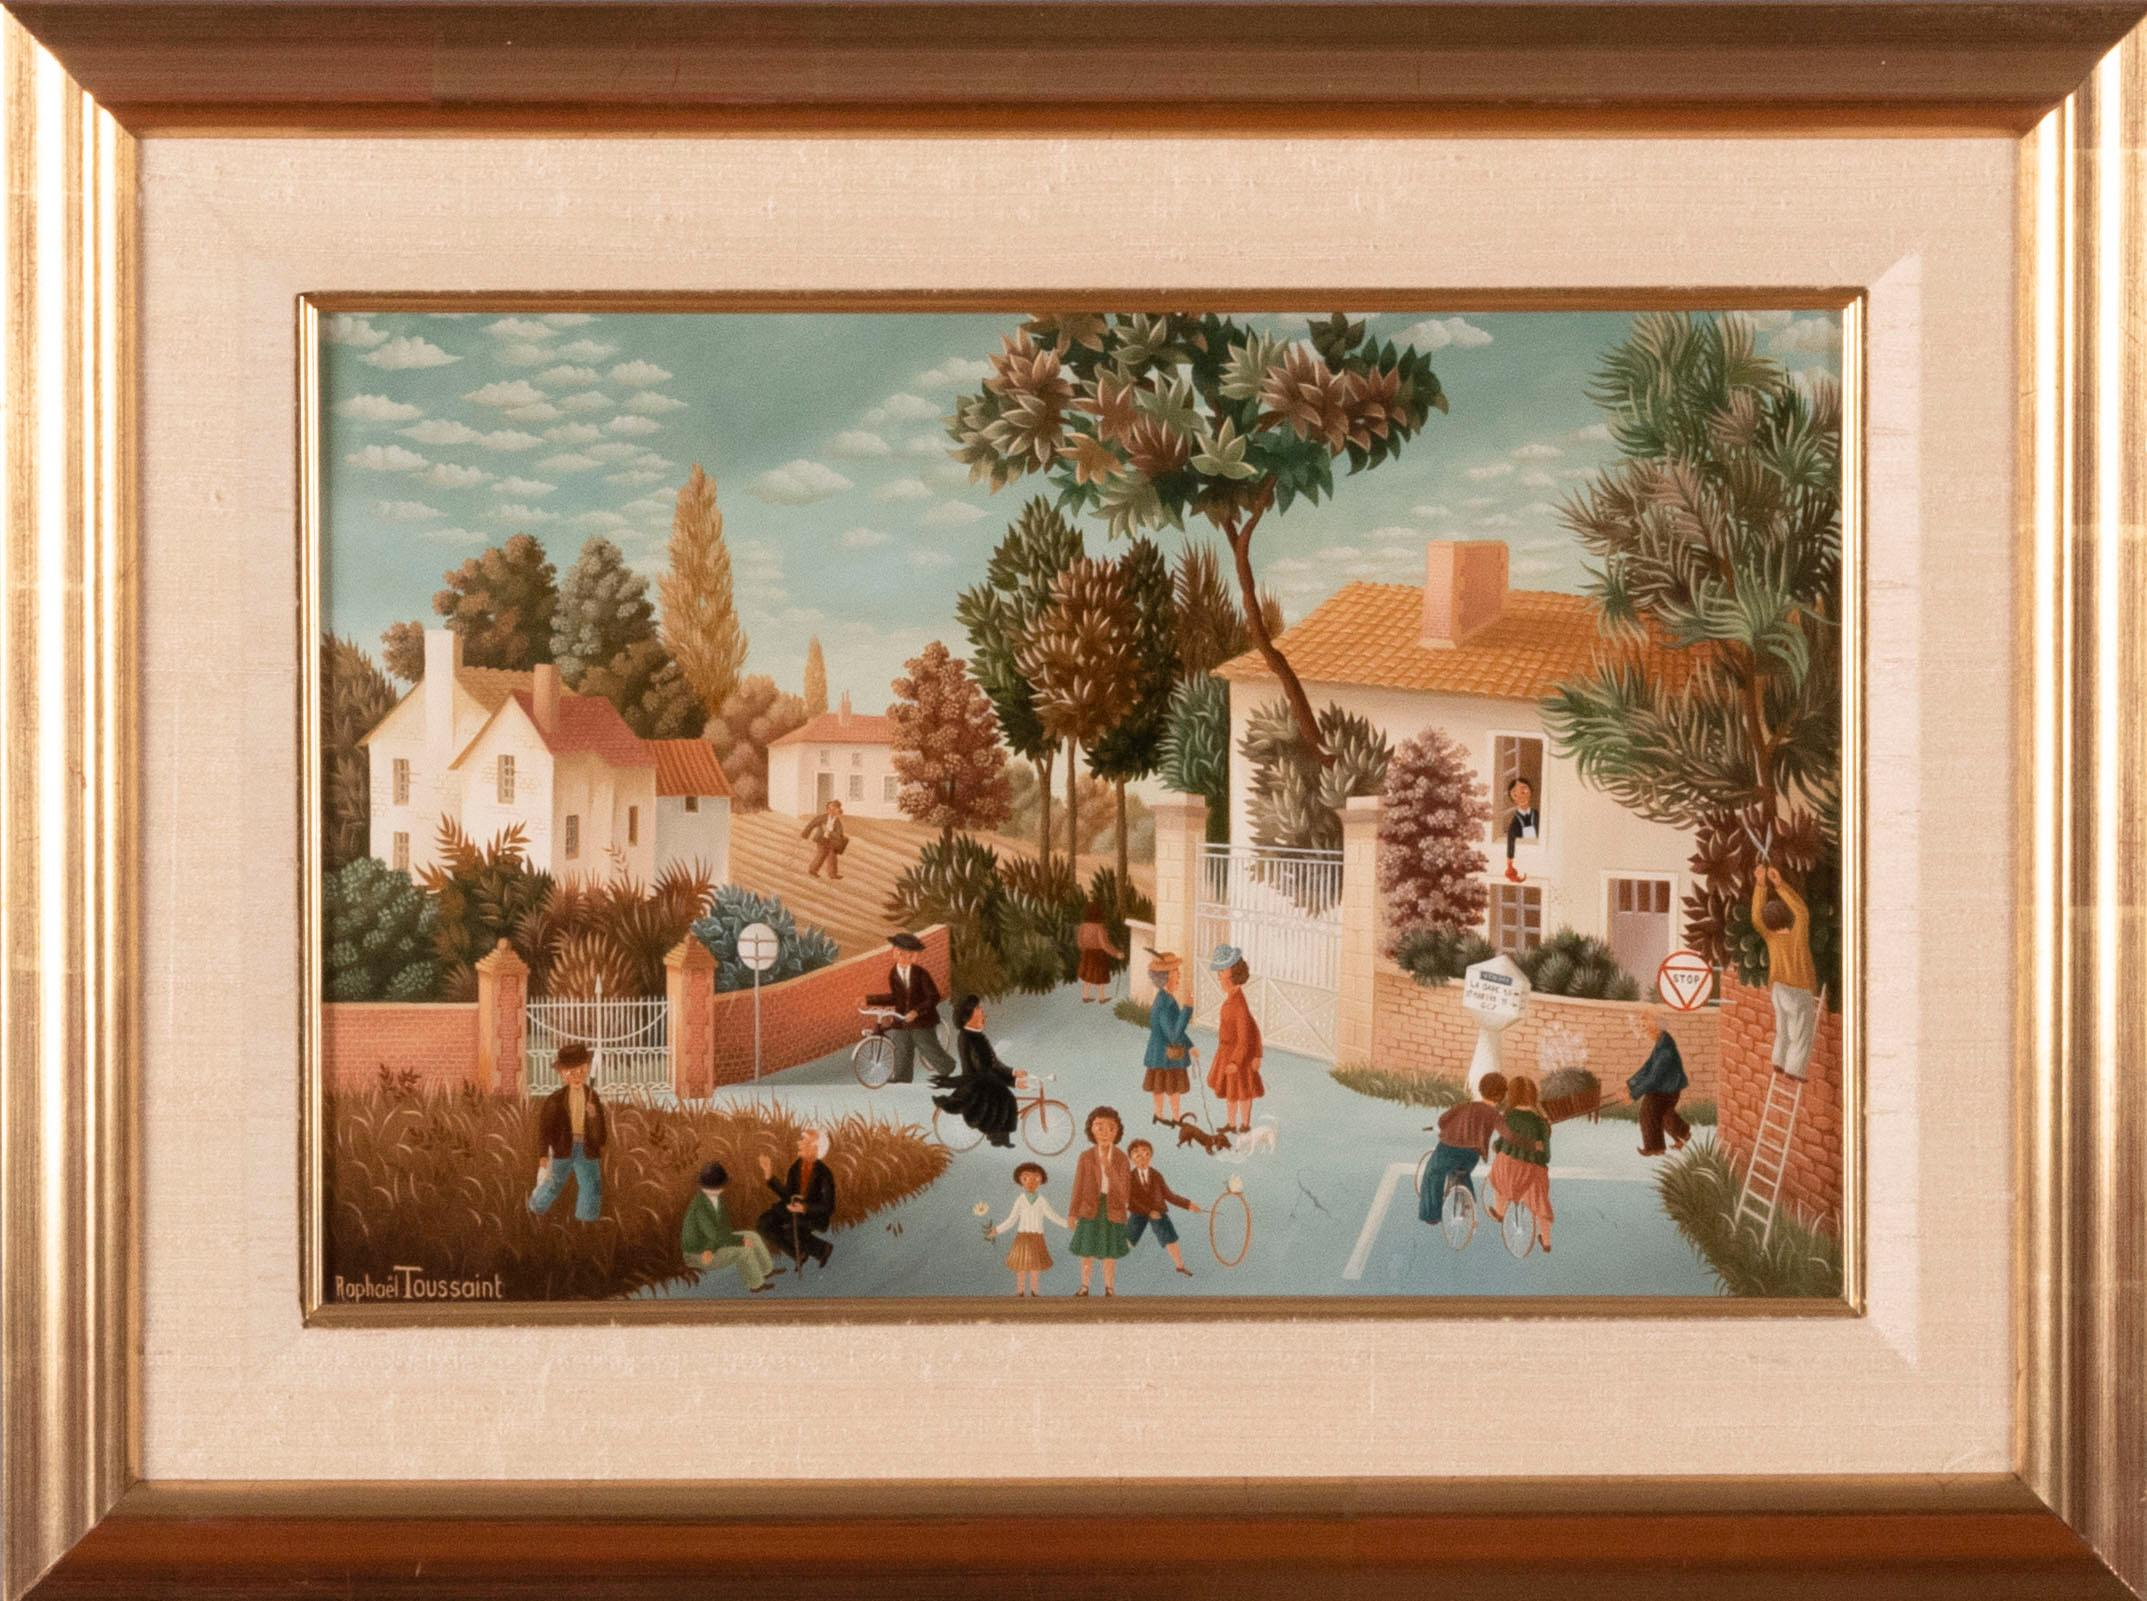 Raphael Toussaint, French (b. 1937), Village Scene with figures Cycling, oil on canvas, 8 x 12 1/2 inches